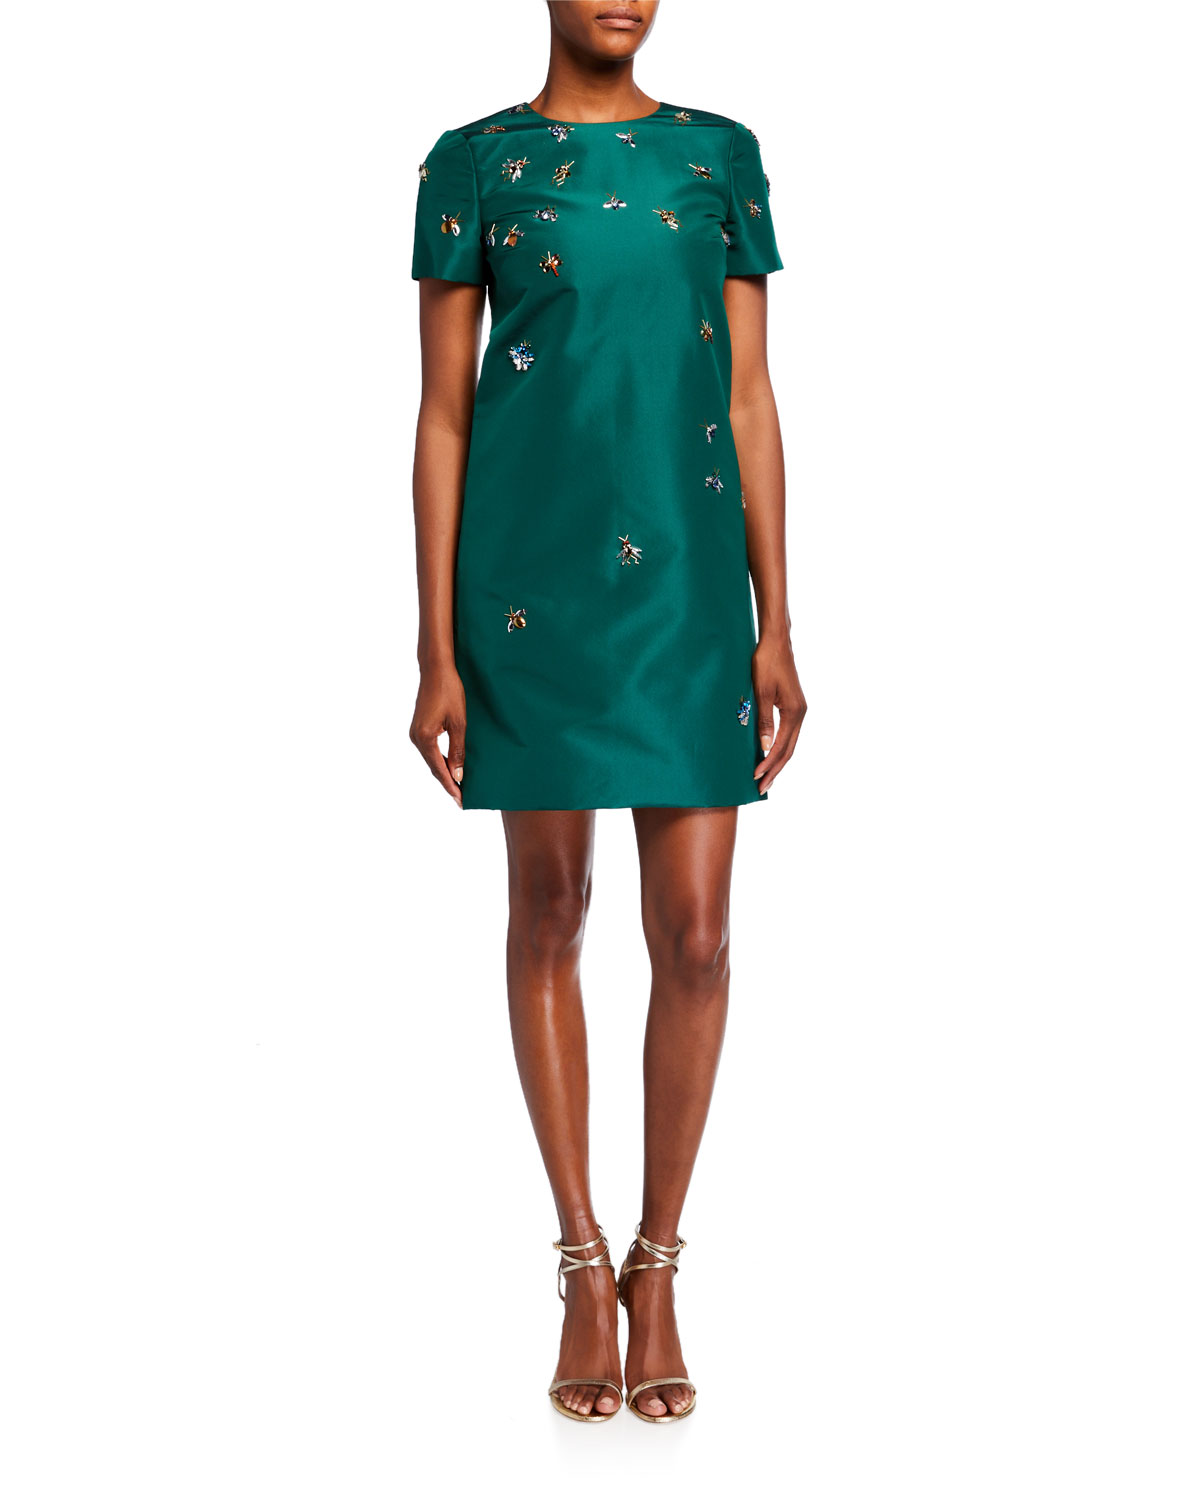 Carolina Herrera Dresses BUG-EMBROIDERED TAFFETA SHIFT DRESS